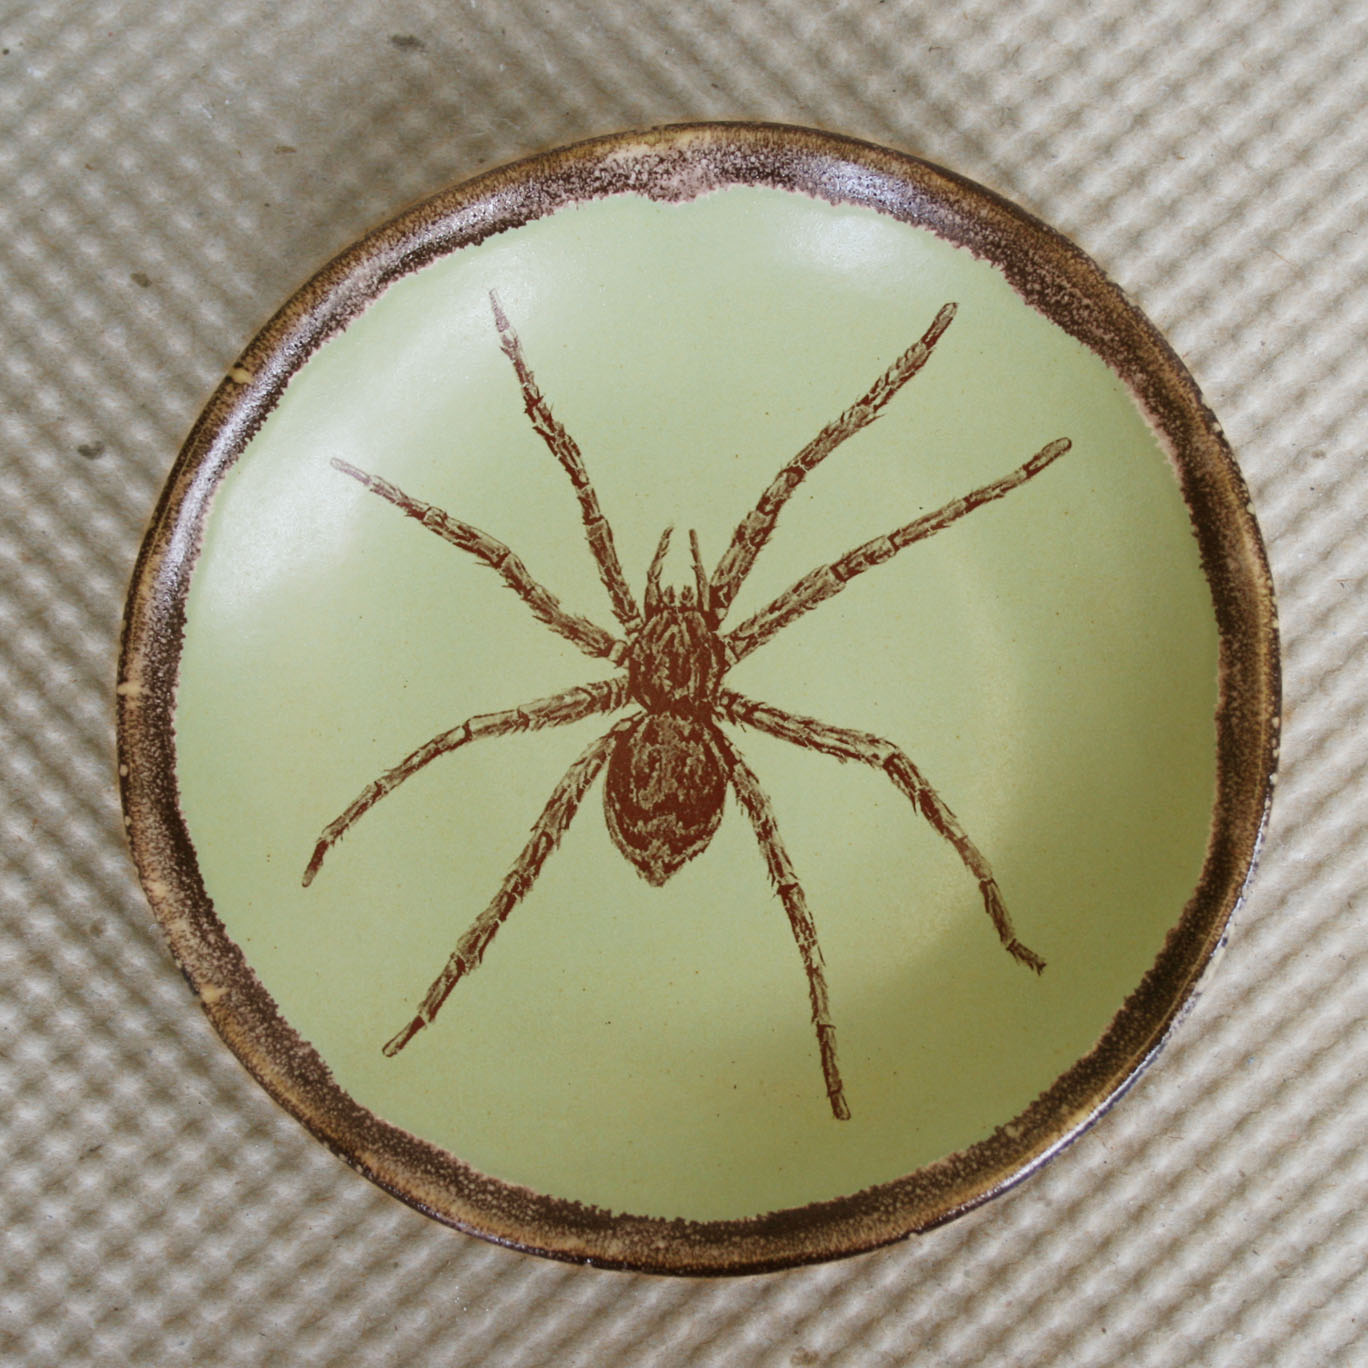 Spider Dishes